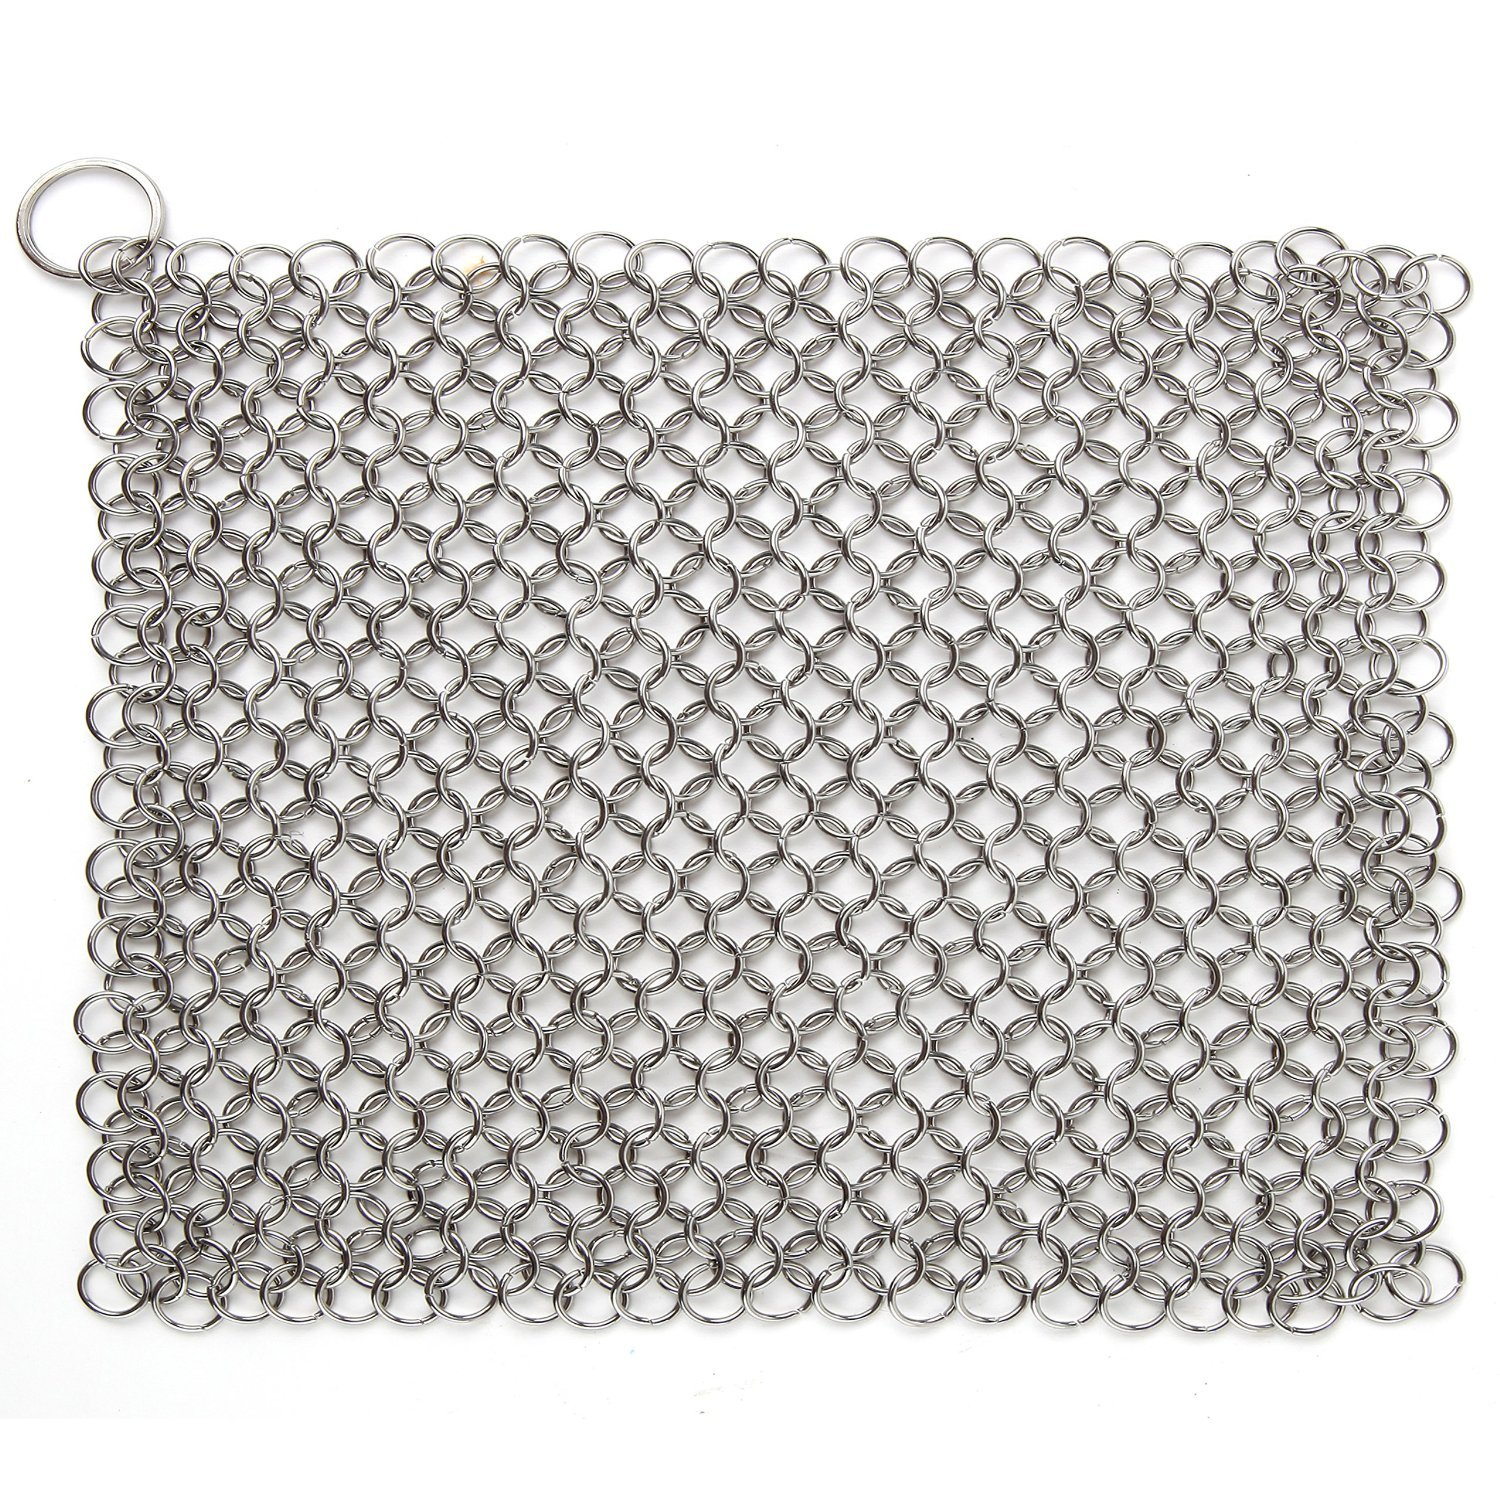 Cast Iron Chainmail Scrubber, Laniakea® Ultimate Solution for Cleaning (Pre)Seasoned Cookware - XLarge, 8x6 Inch, Handcrafted from Stainless Steel